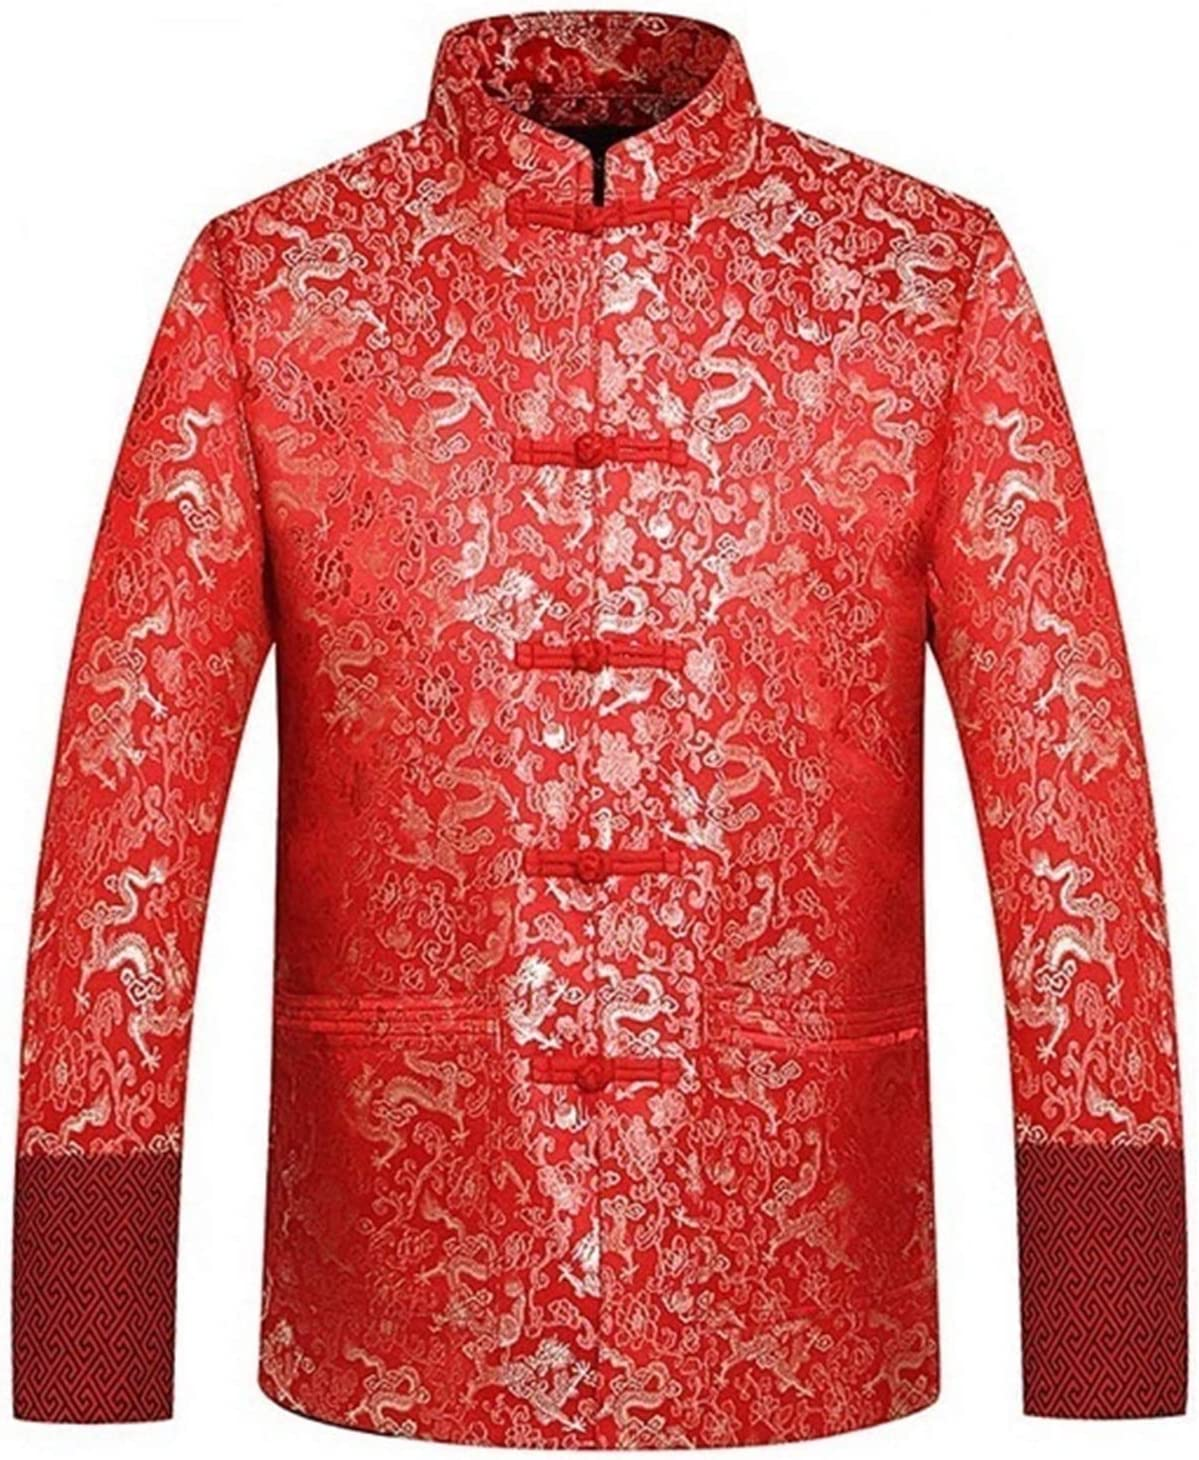 Furunke Traditional Chinese Clothing Tang Suit Wedding Jacket Red Silk Jacket Men Autumn Dragon Cheongsam Tops Plus Size 4XL (Color : J 1065 Red, Size : XXXL)